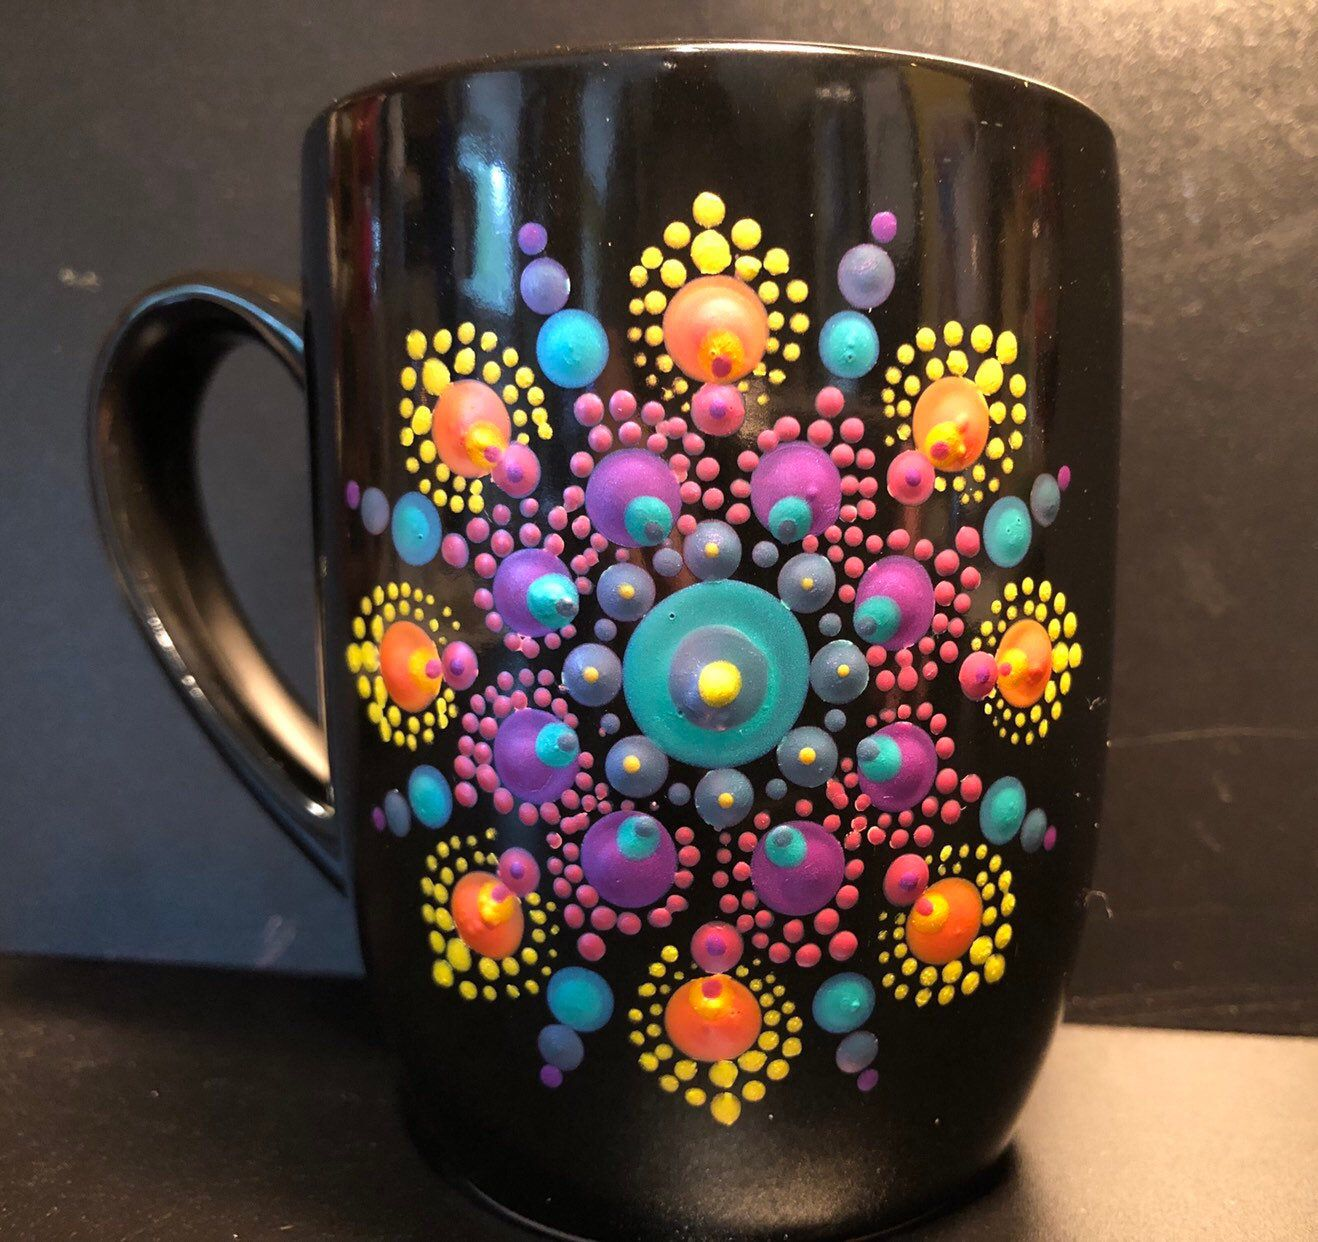 Dot Mandala Mug Dot Mug Mandala Mug Mandala Gift Coffee Etsy Pottery Painting Designs Dot Art Painting Ceramic Painting